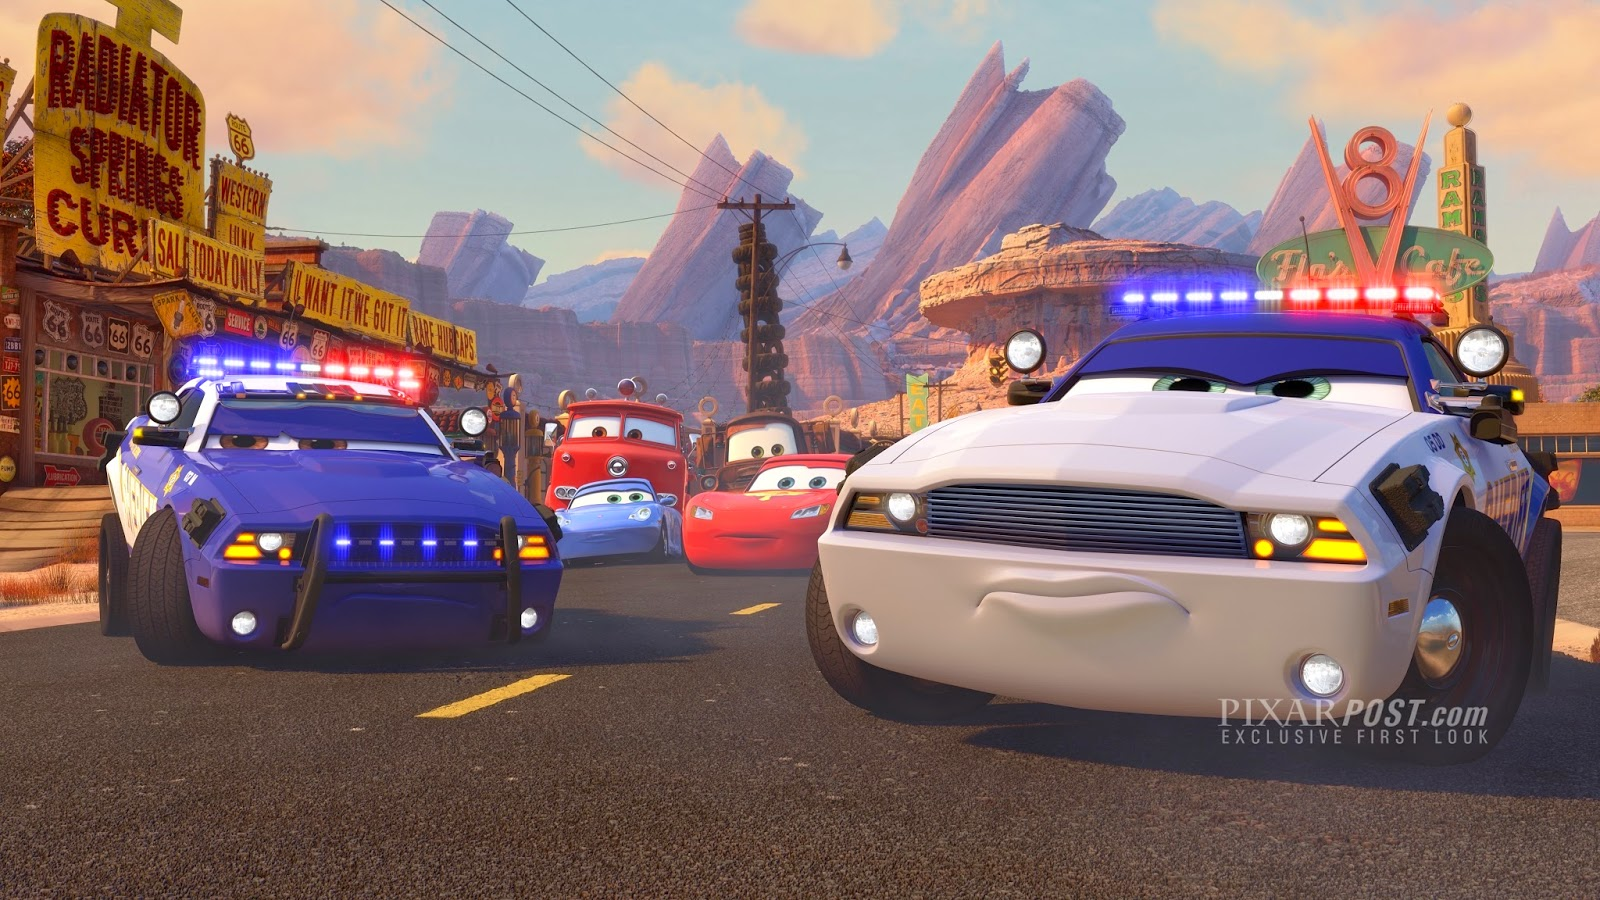 Cars Toons: To Protect and Serve (Lost Animated Short Film of Pixar Animated Series)